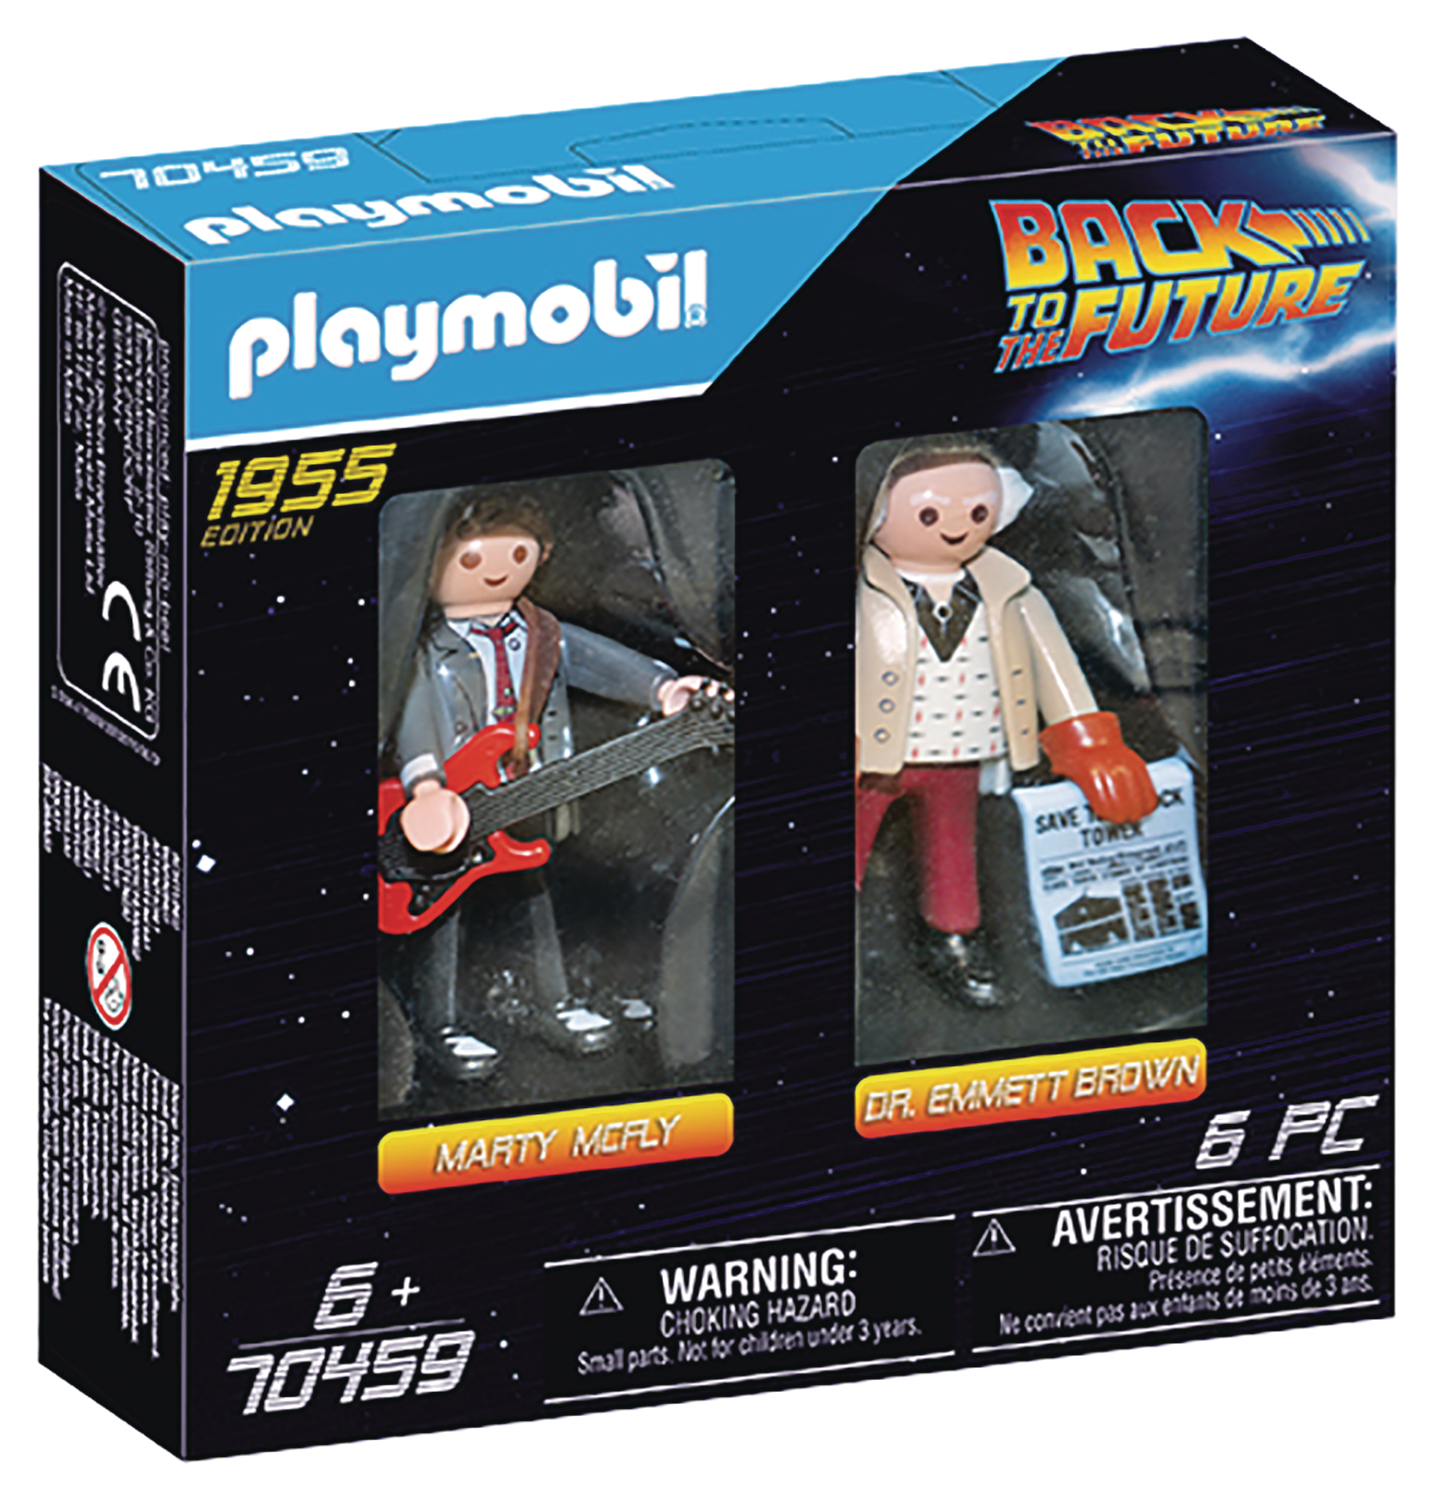 PLAYMOBIL BACK TO THE FUTURE MARTY & DR EMMETT BROWN 2PK (NE